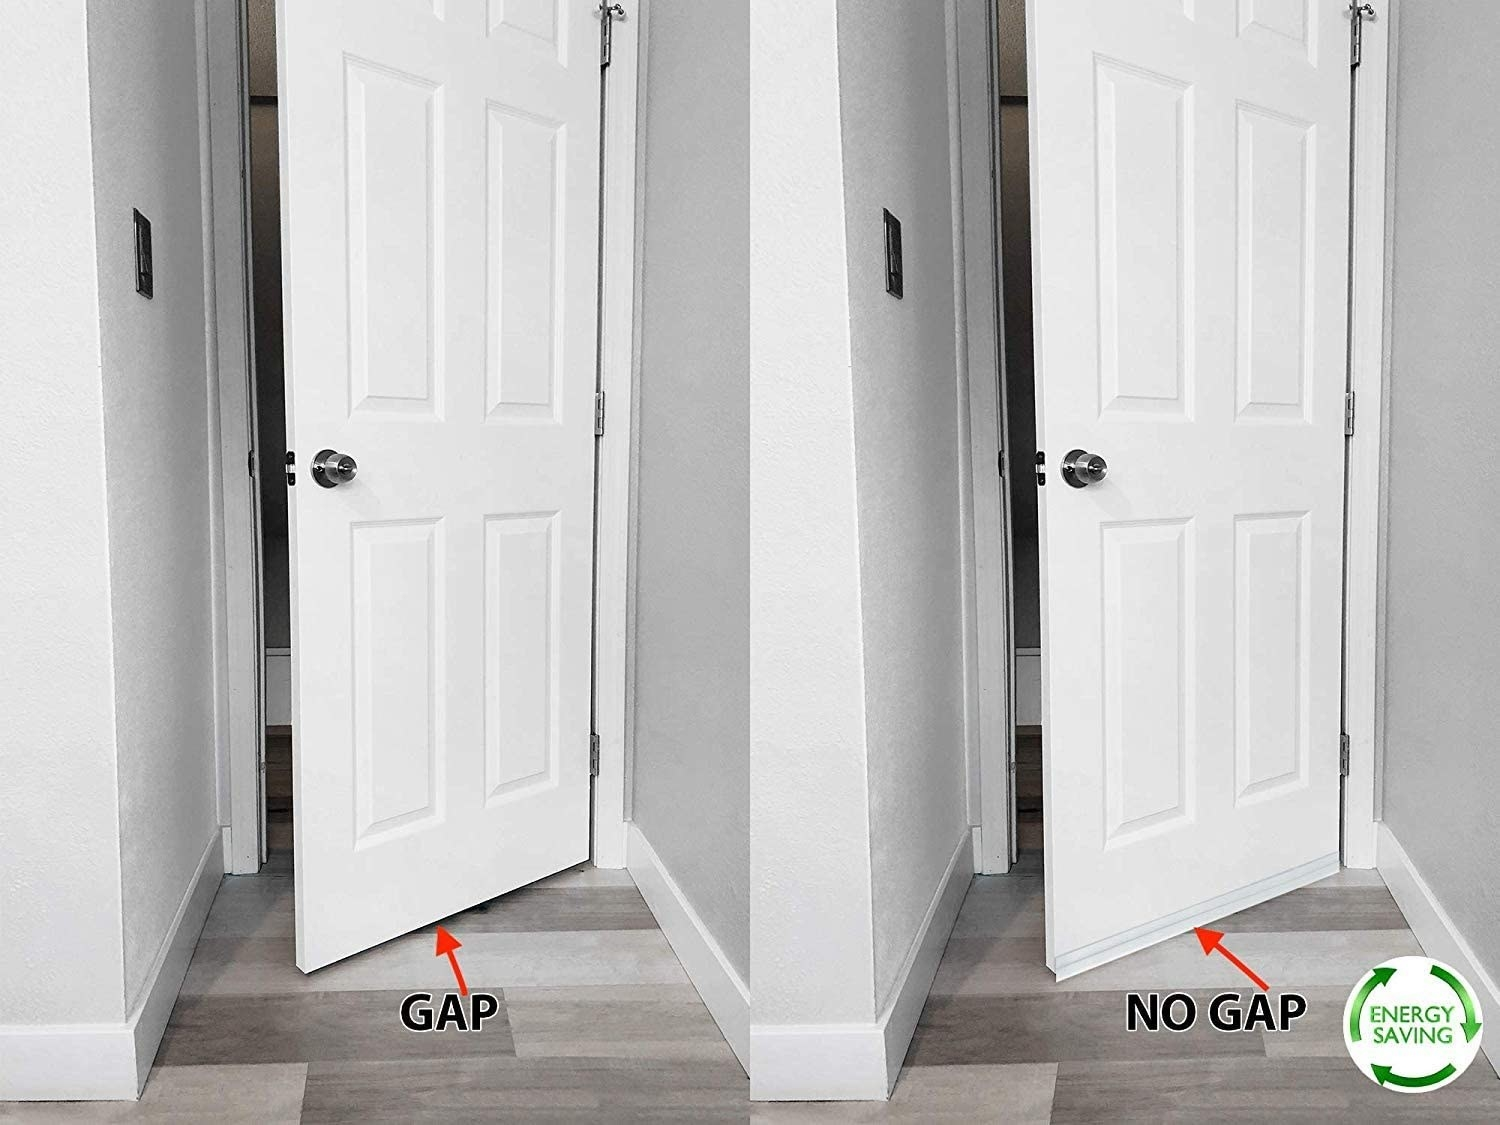 A before image of a open door with a gap at the bottom between the door and the floor and an after image of a thick sticker covering the gap